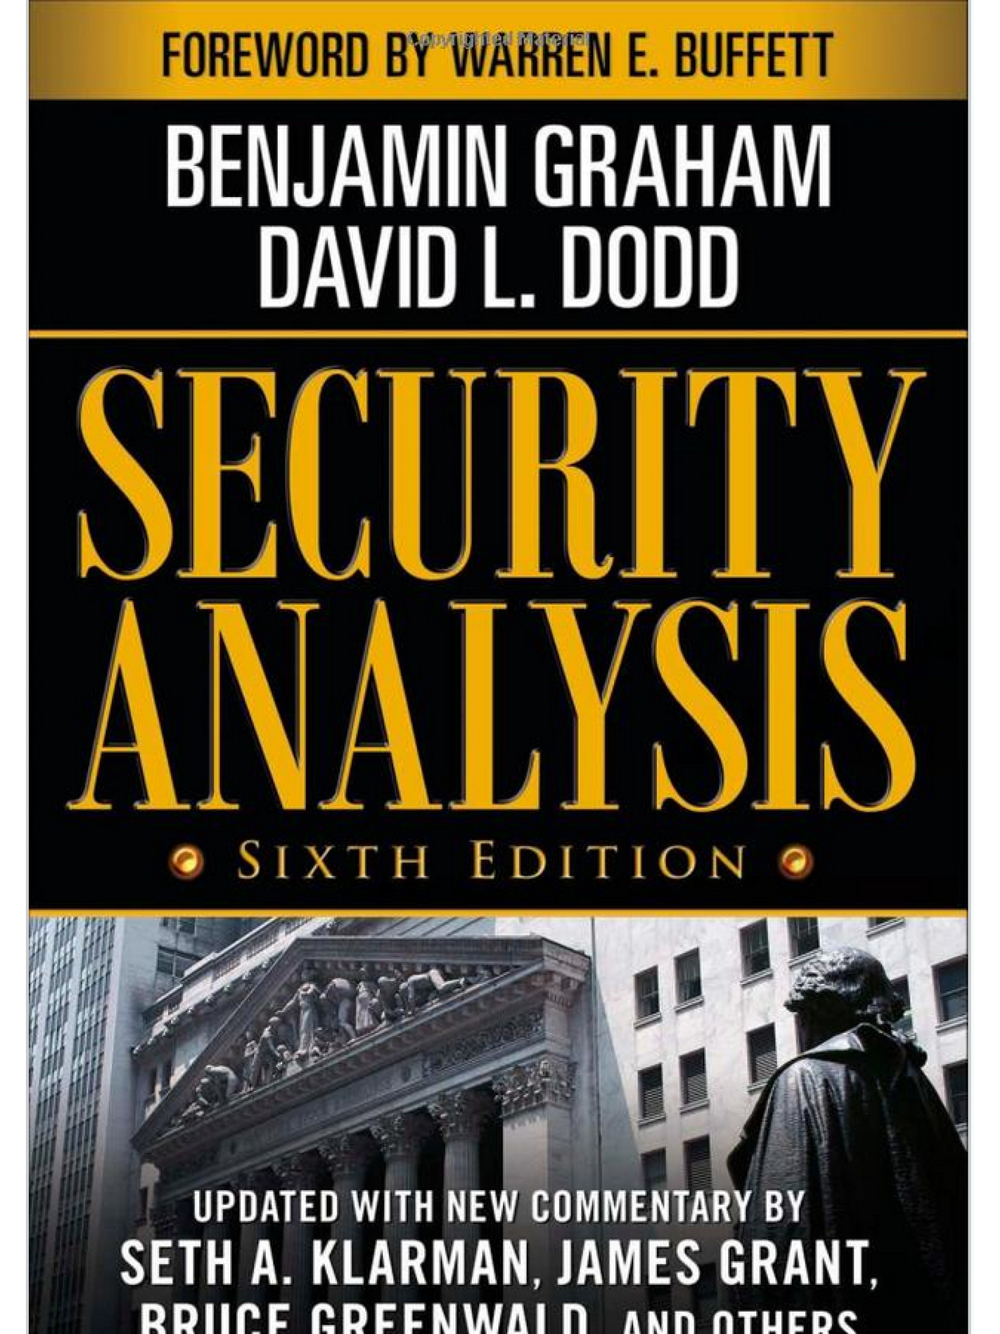 Security Analysis. Benjamin Graham & David L. Dodd 2008 (Sixth Edition)